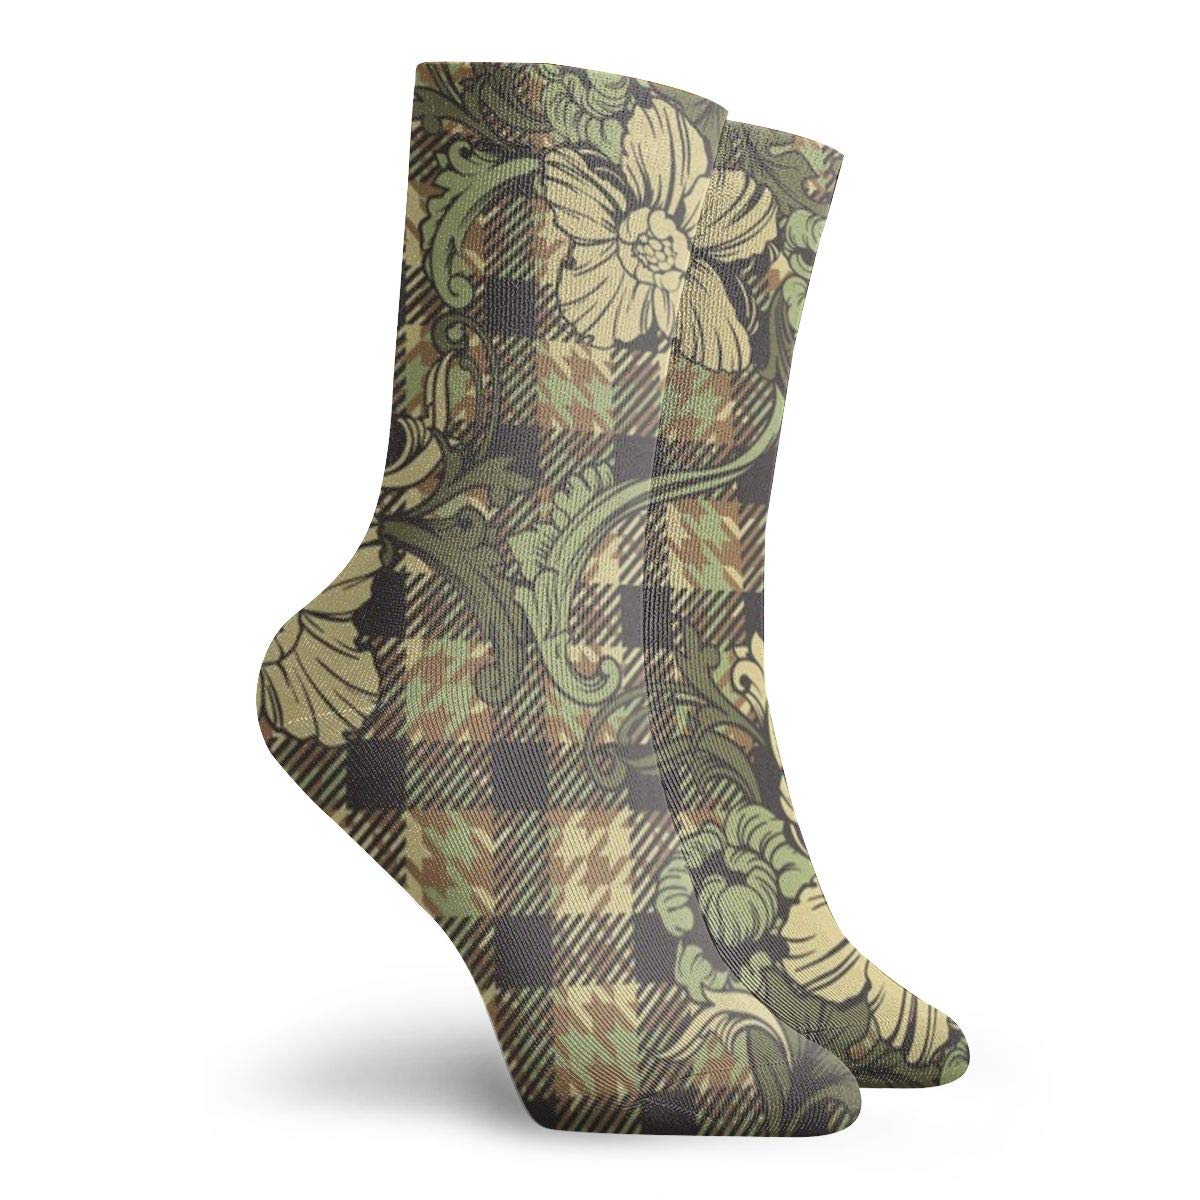 Plaid-with-flowers/_1015-120 Unisex Funny Casual Crew Socks Athletic Socks For Boys Girls Kids Teenagers